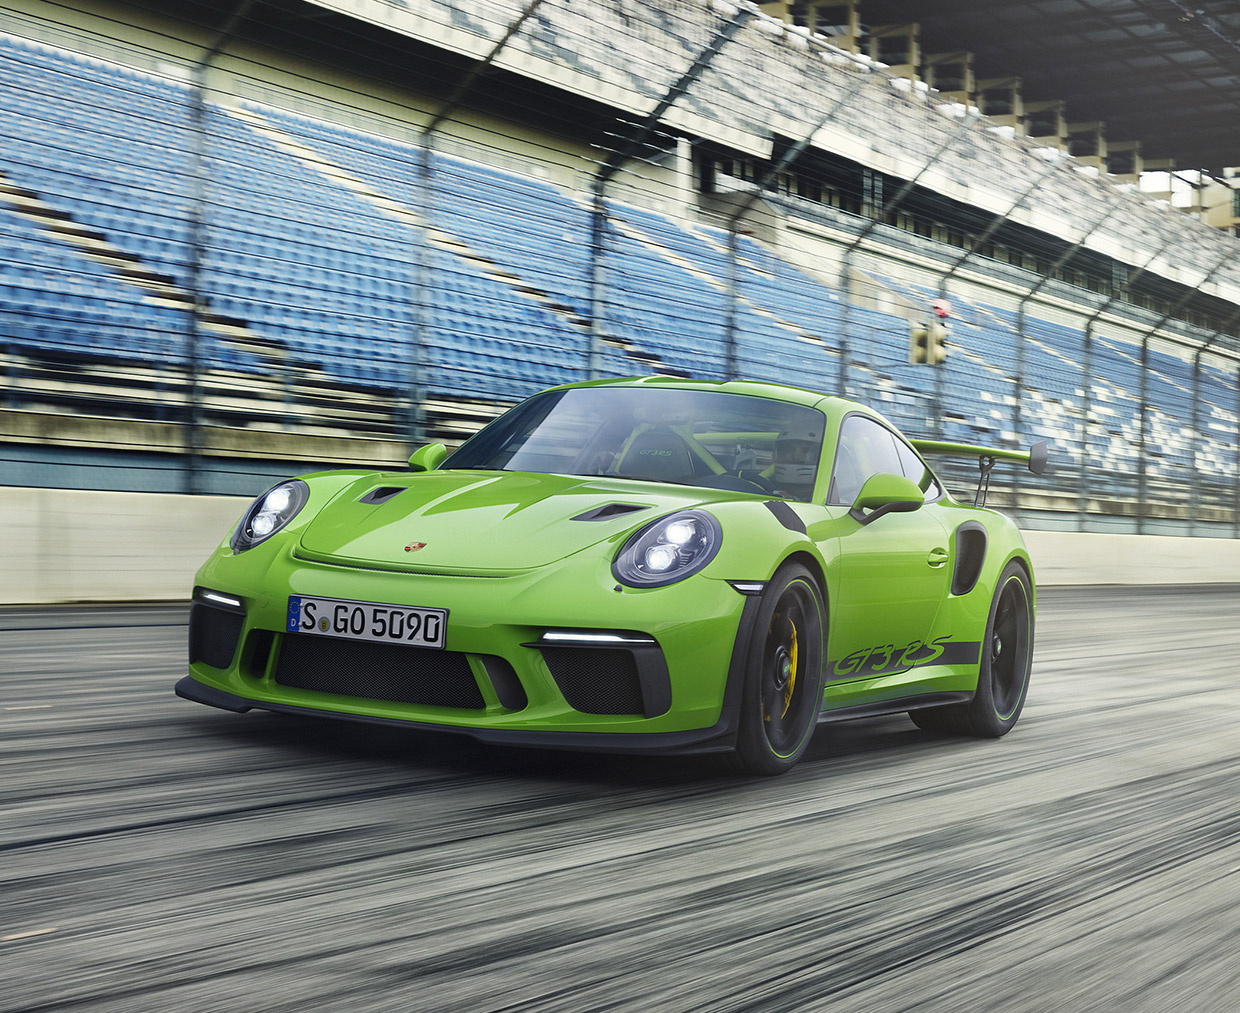 2019 Porsche 911 GT3 RS Price and Specs Announced